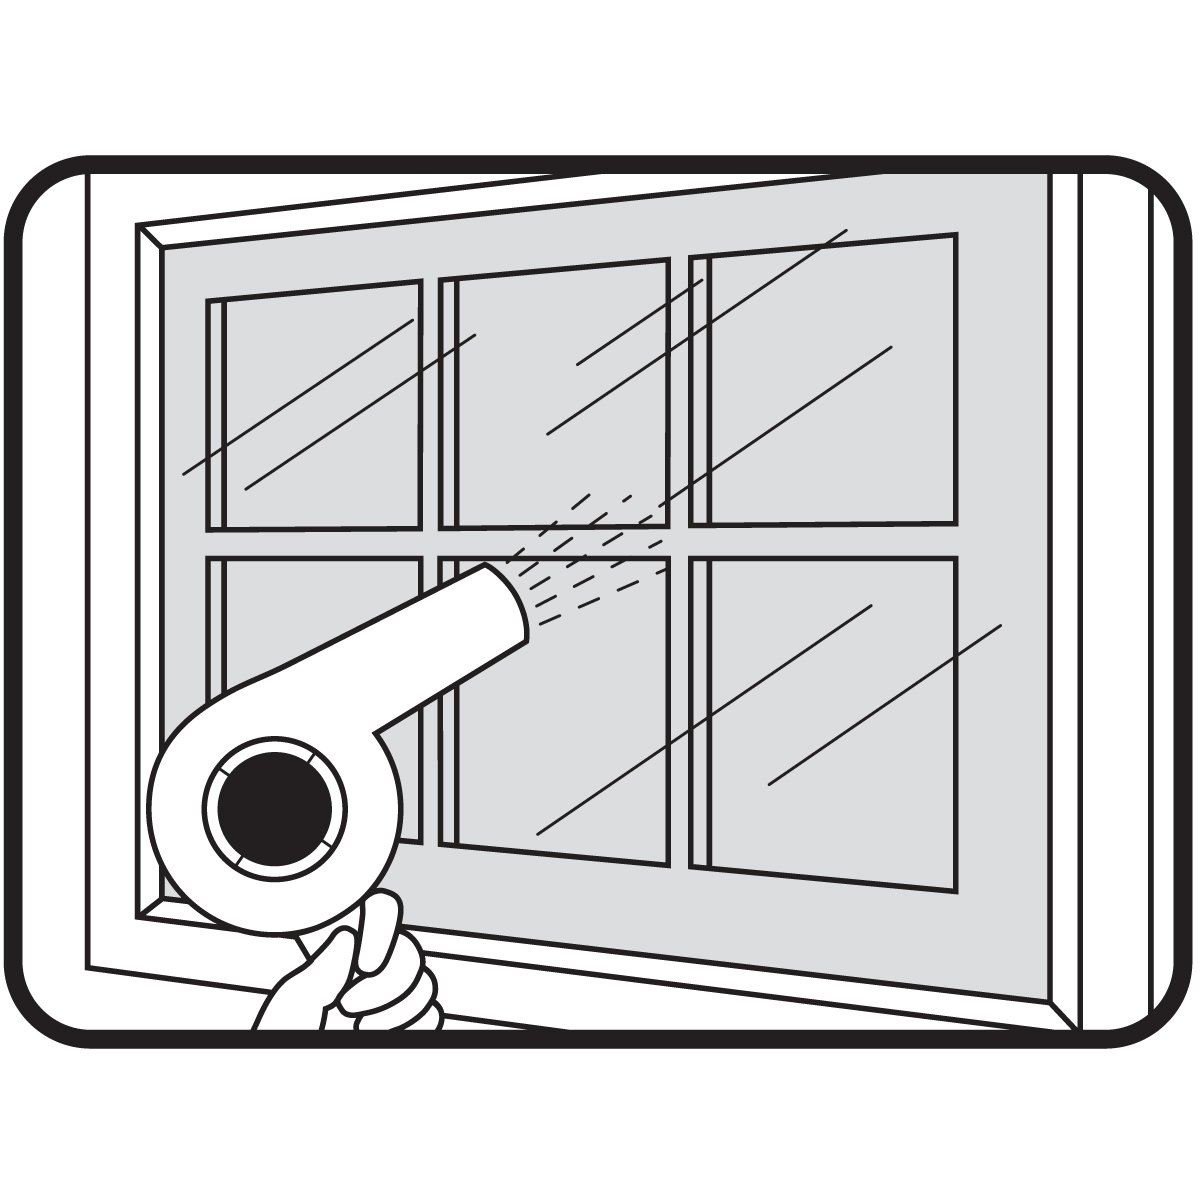 M-D Building Products 4200 210-Inch-by-62-Inch Shrink and Seal Window Kit 1